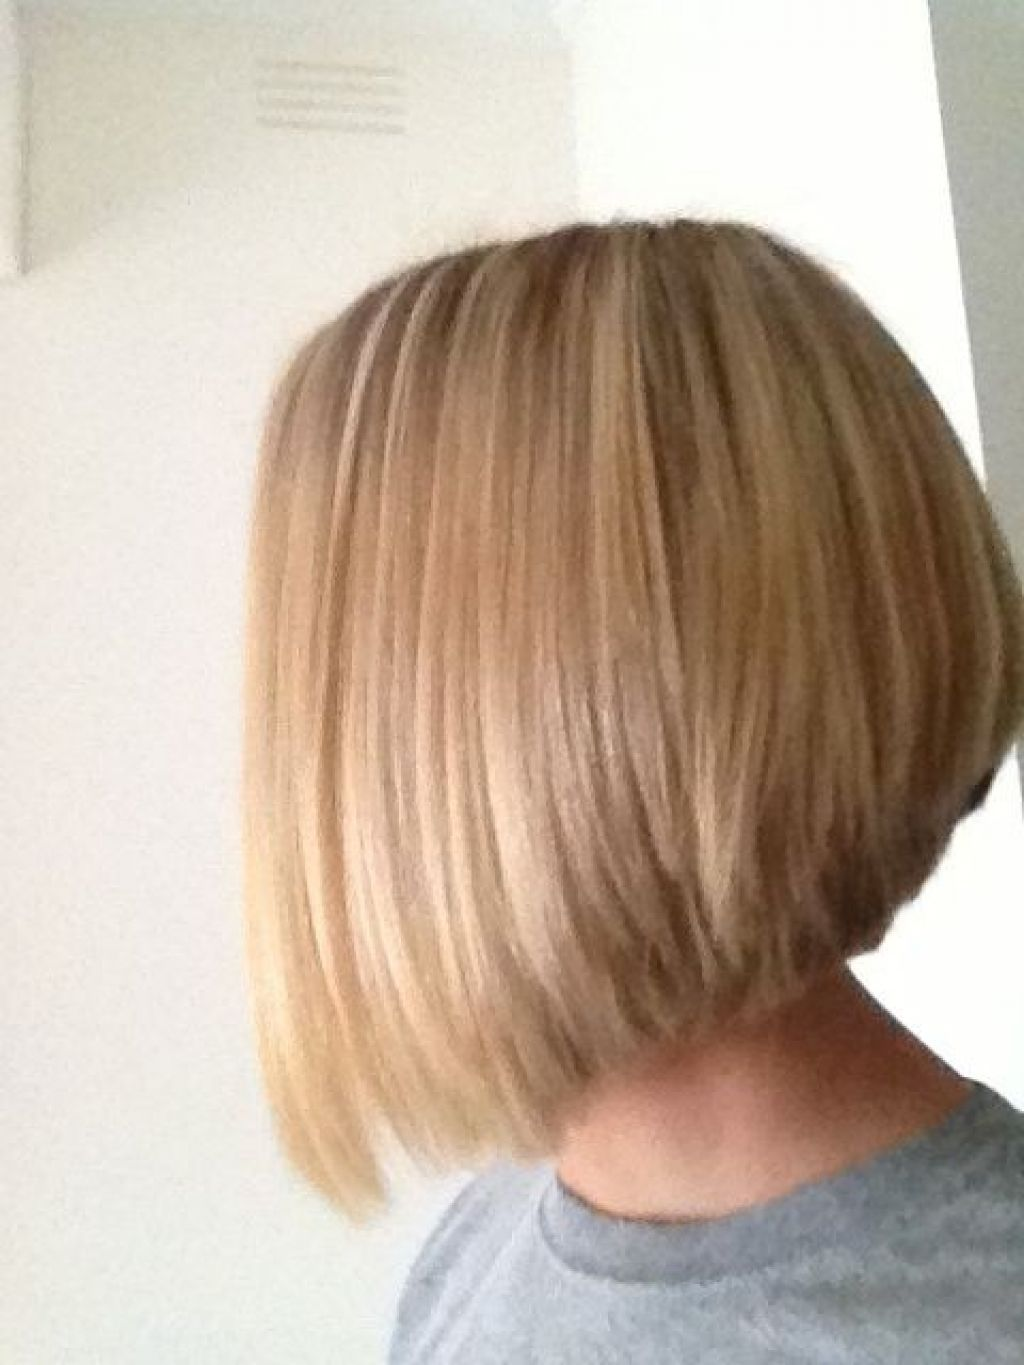 Remarkable 1000 Images About Hairstyles On Pinterest Medium Straight Short Hairstyles Gunalazisus